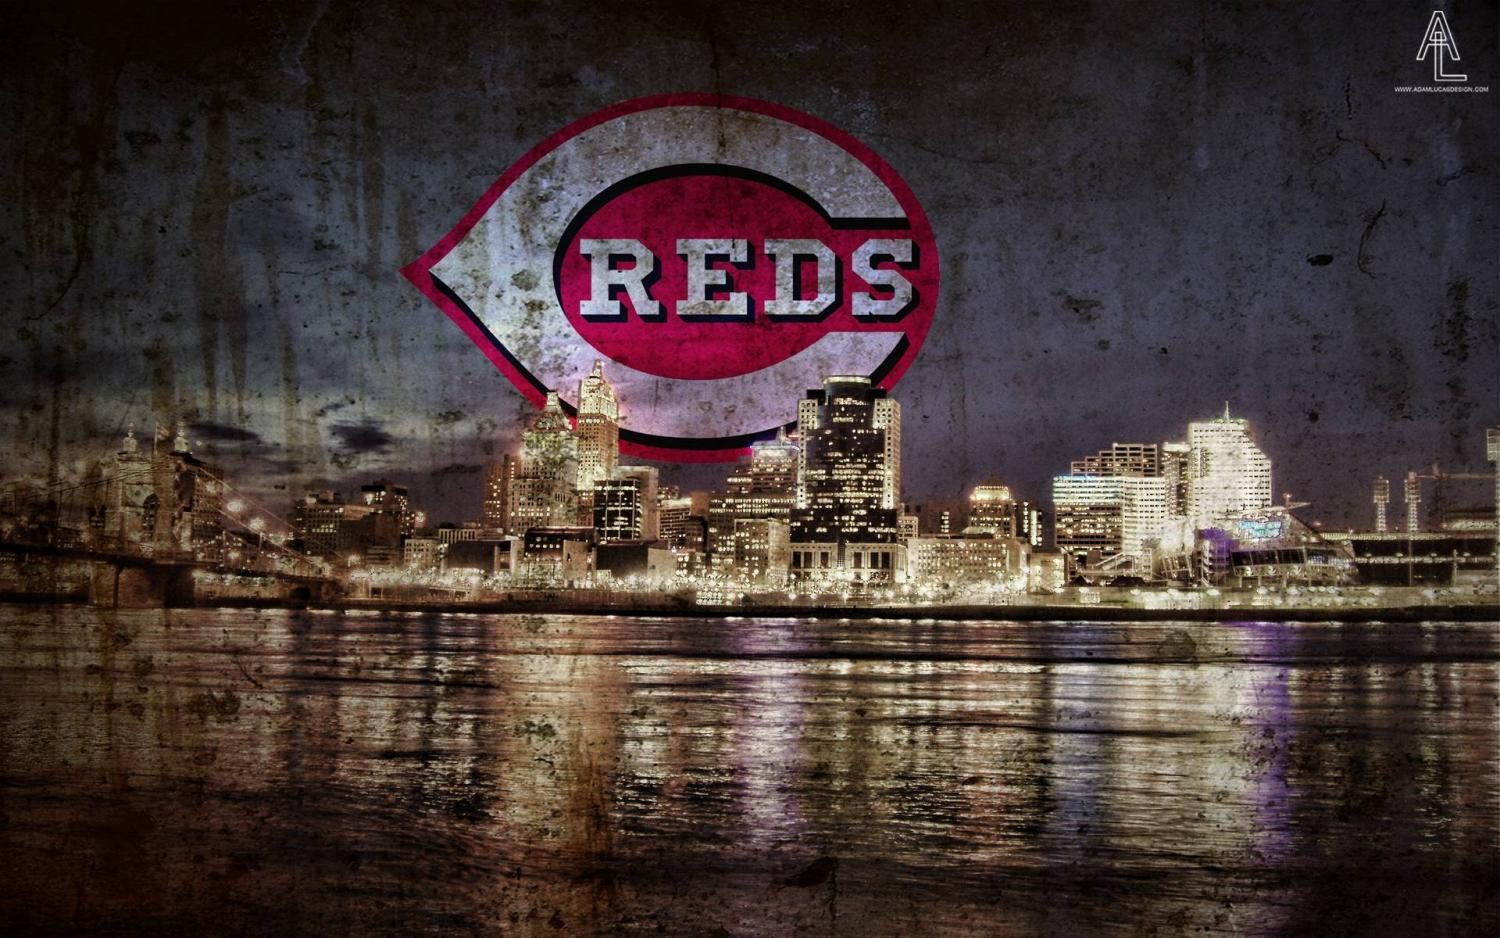 Cincinnati+Reds+are+shinning